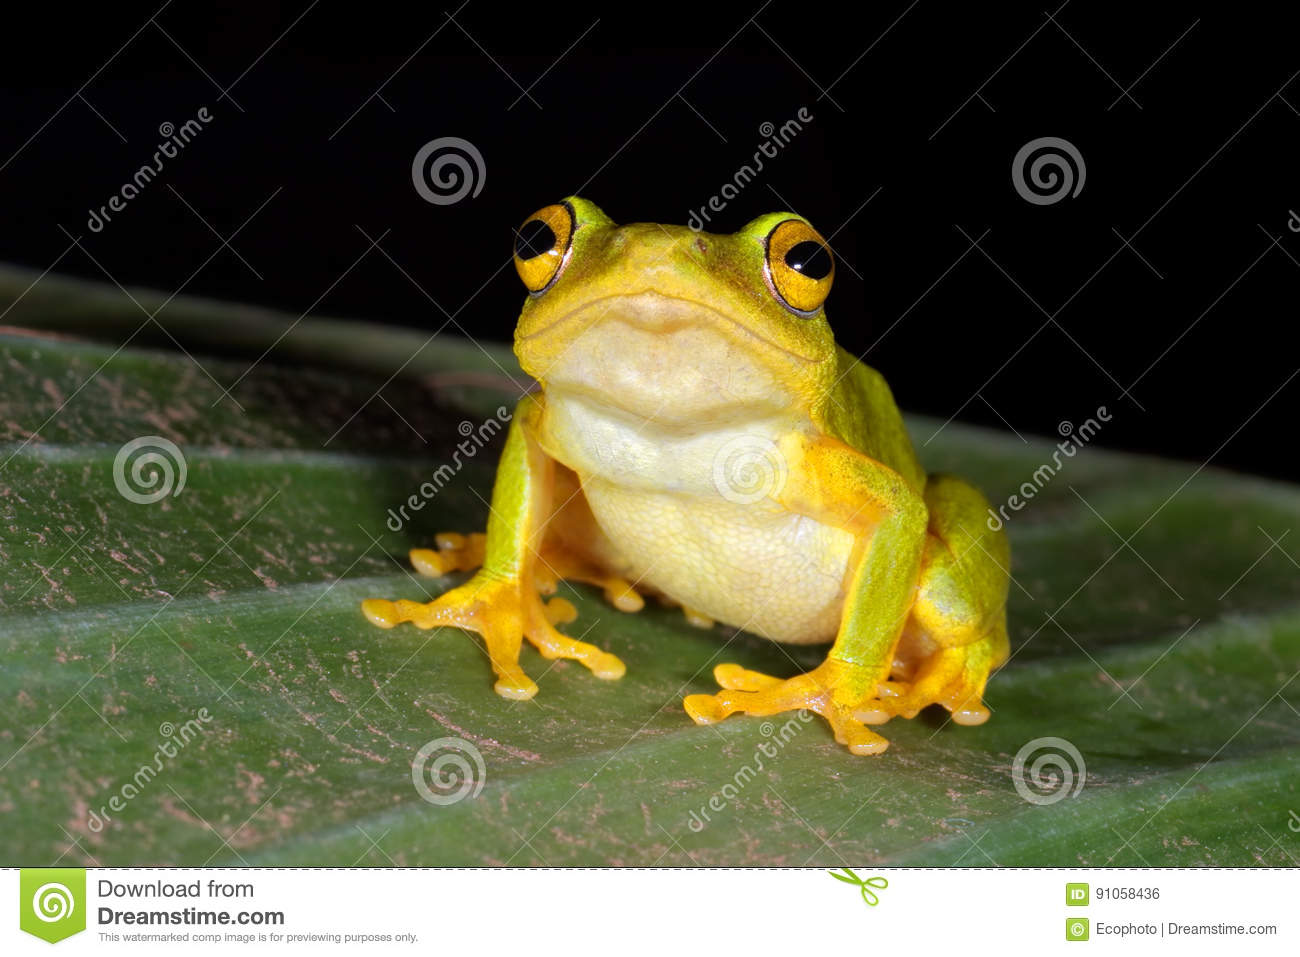 Tinker reed frog